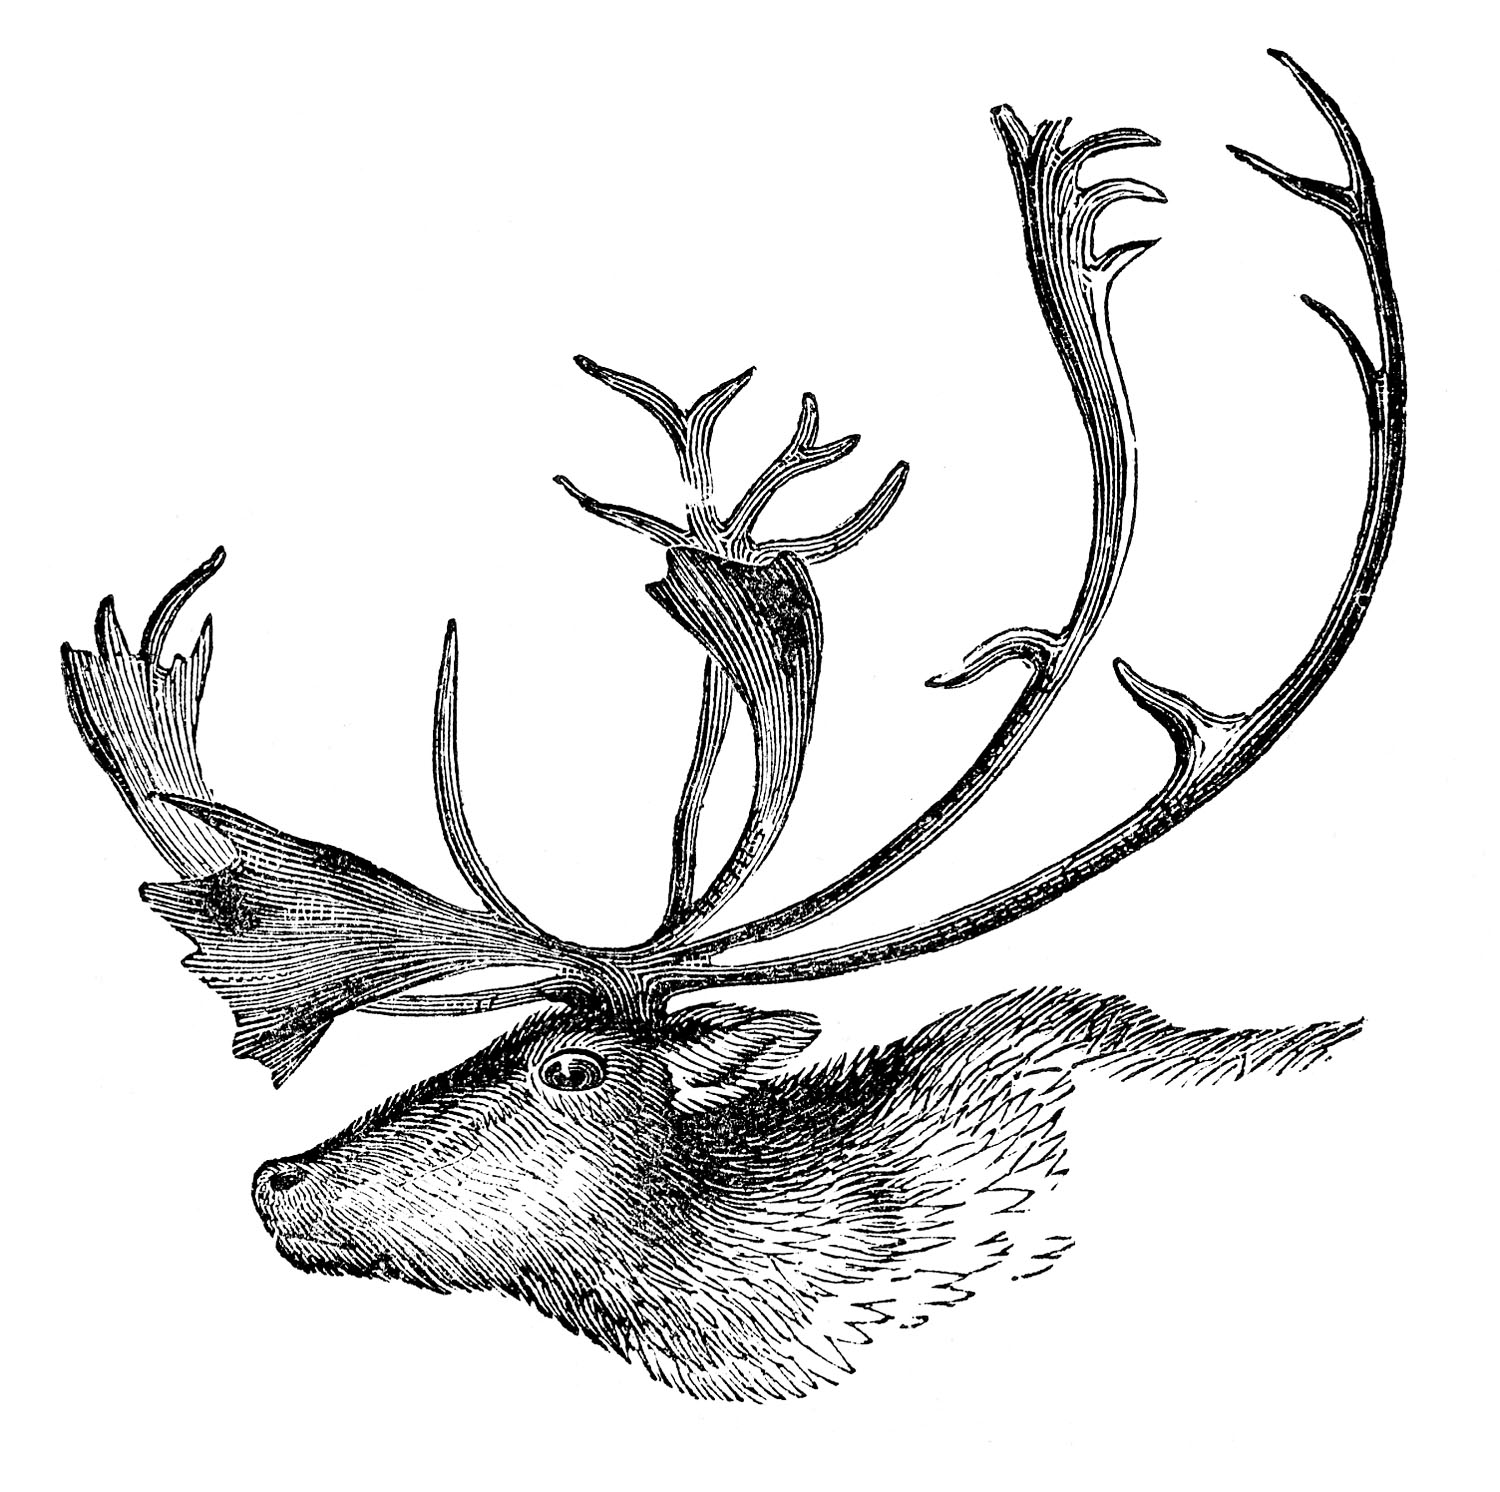 Vintage Animal Clip Art - Caribou with Antlers - The Graphics Fairy